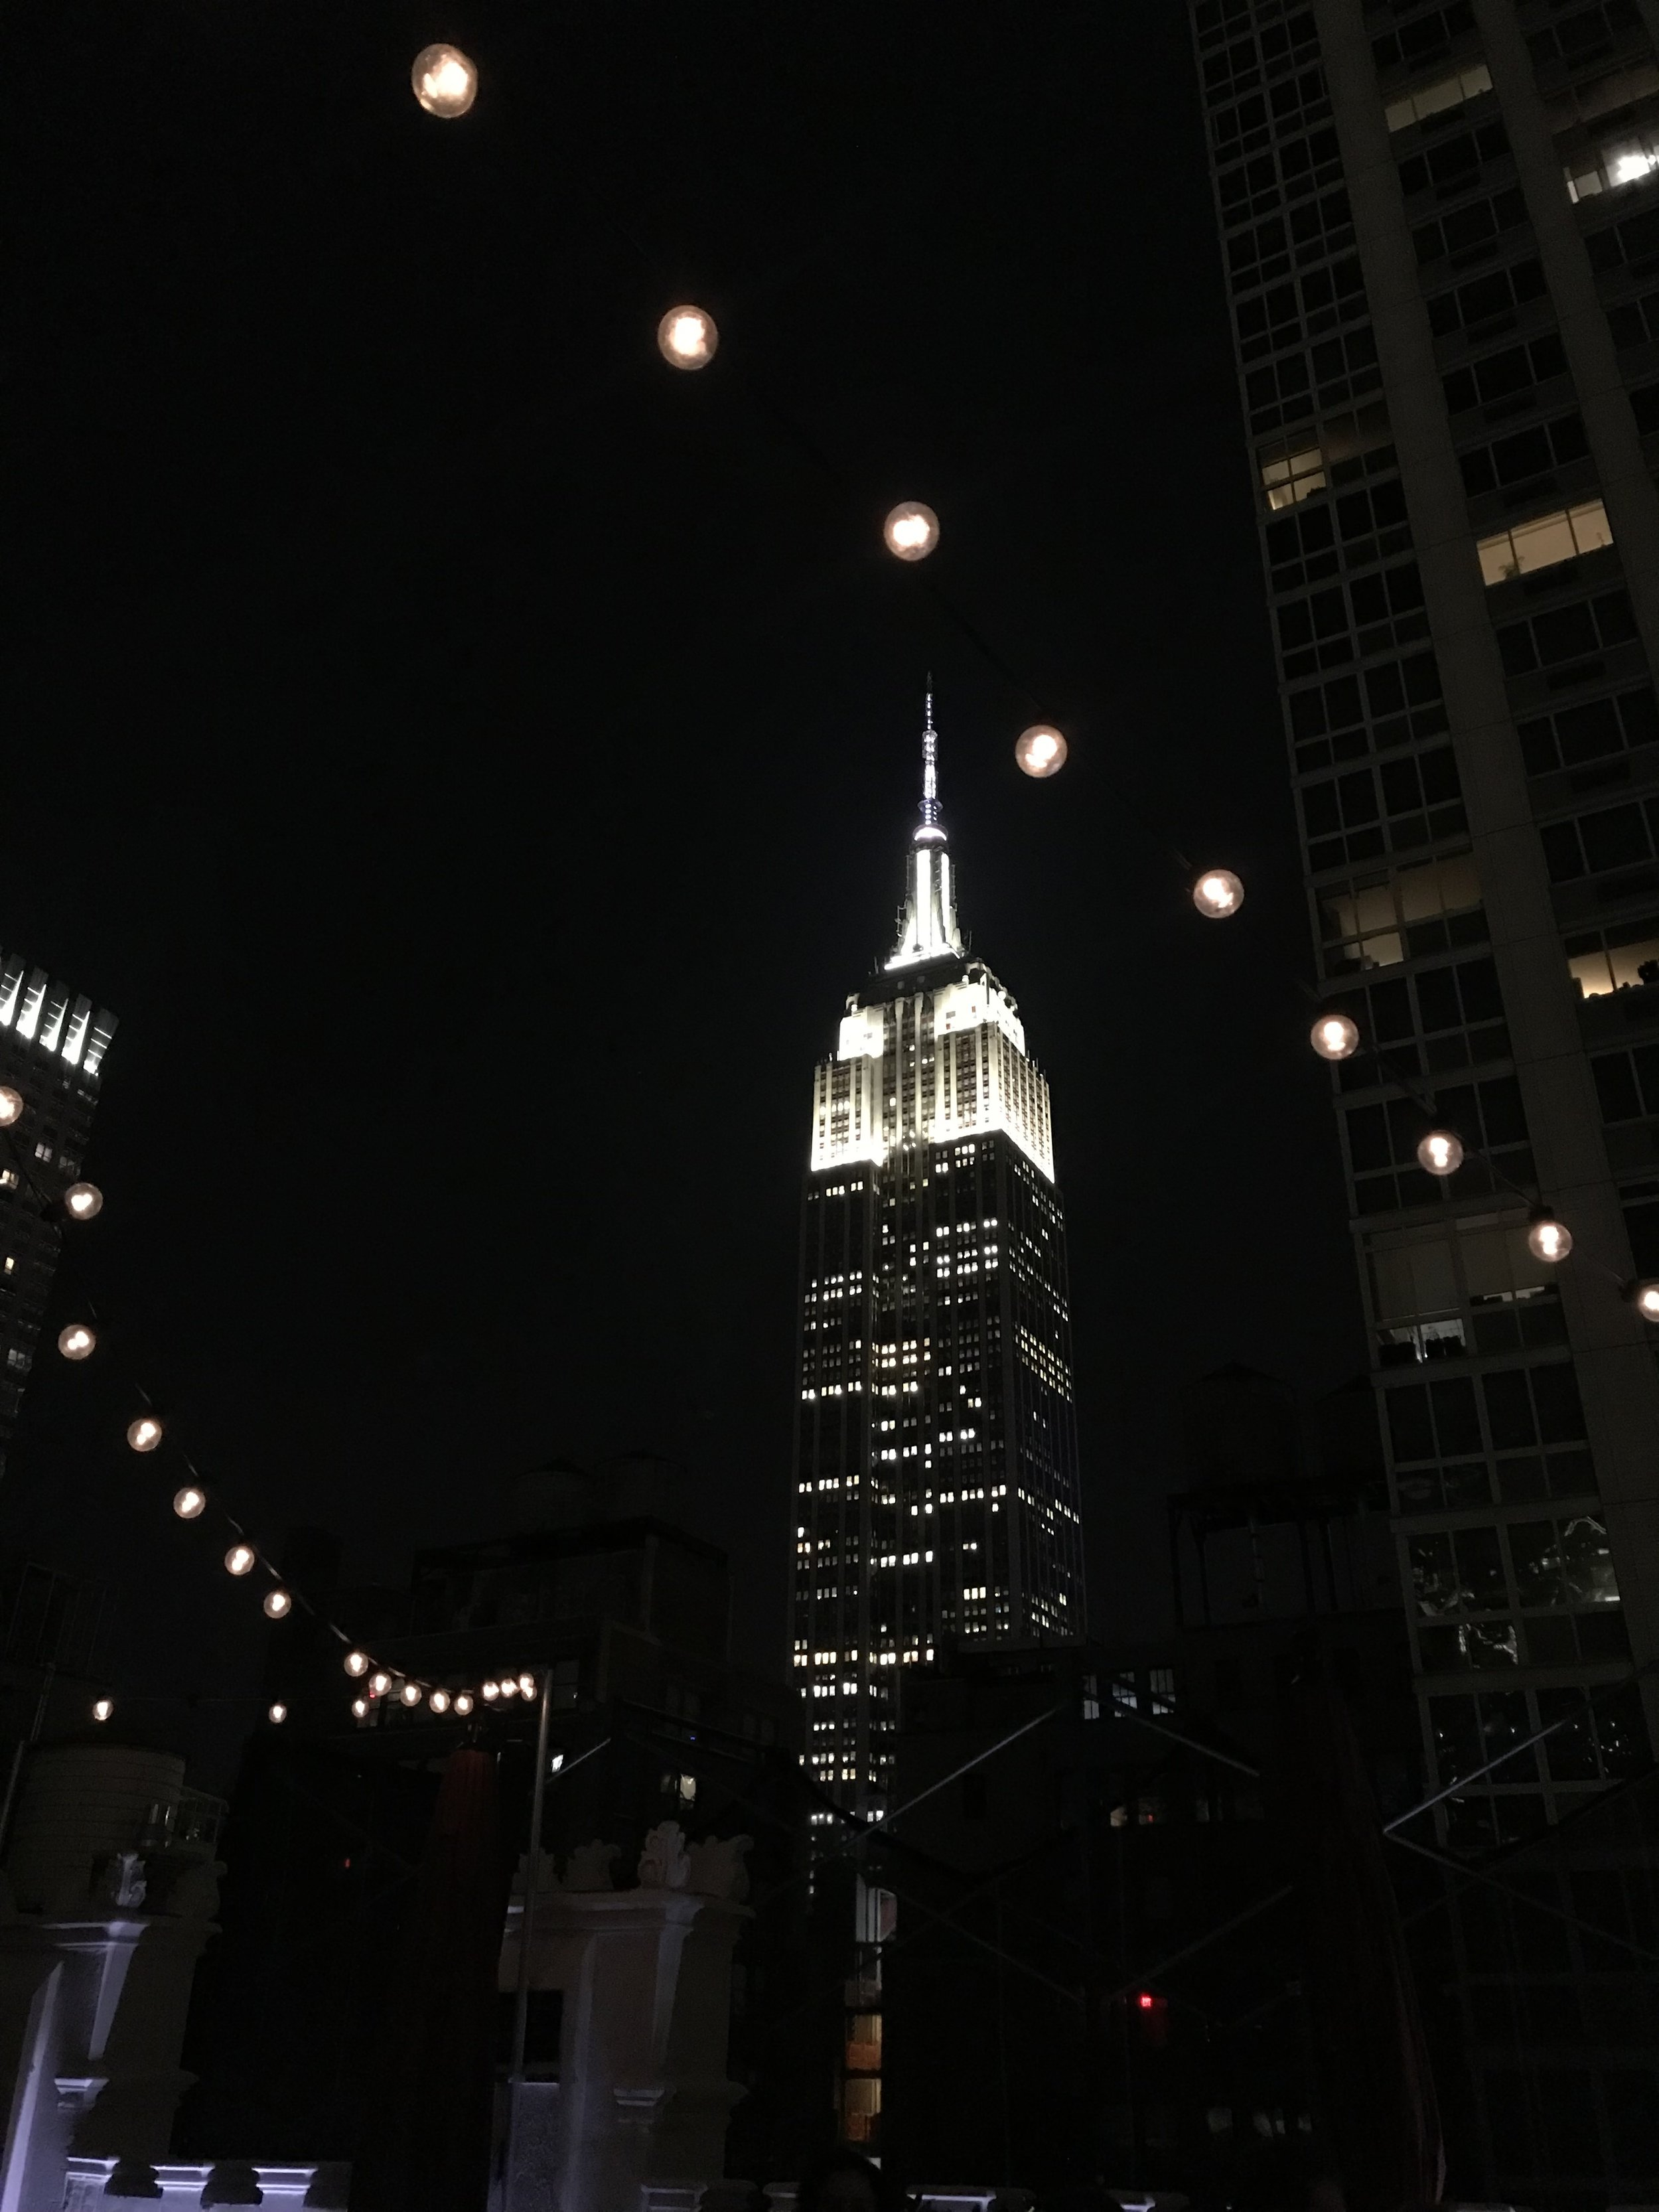 Bre Sheppard - My First NYFW -  Empire State Building.jpg